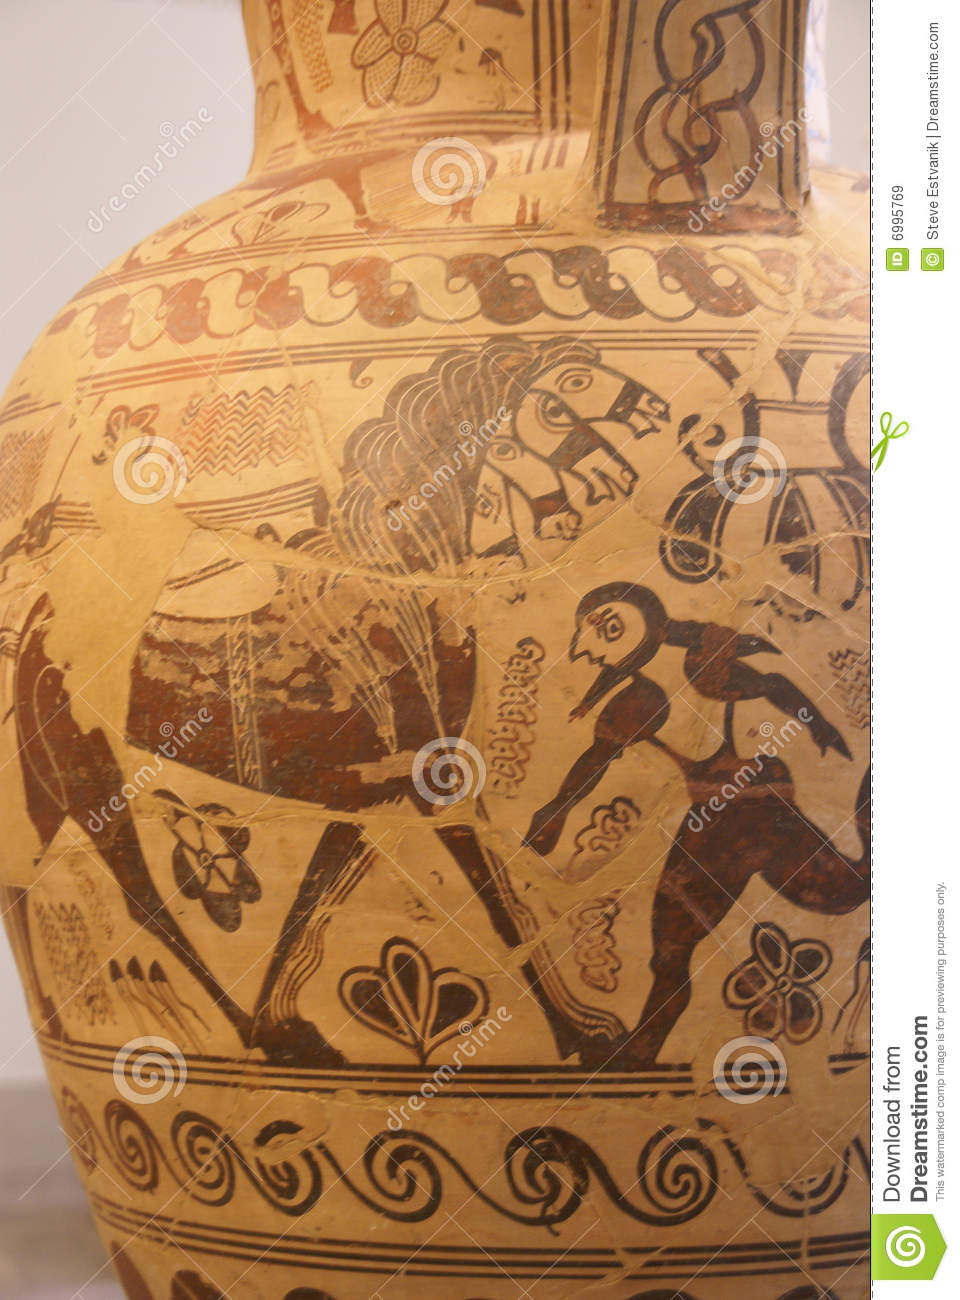 Ancient greek vase painting stock image image 6995769 ancient greek vase painting reviewsmspy